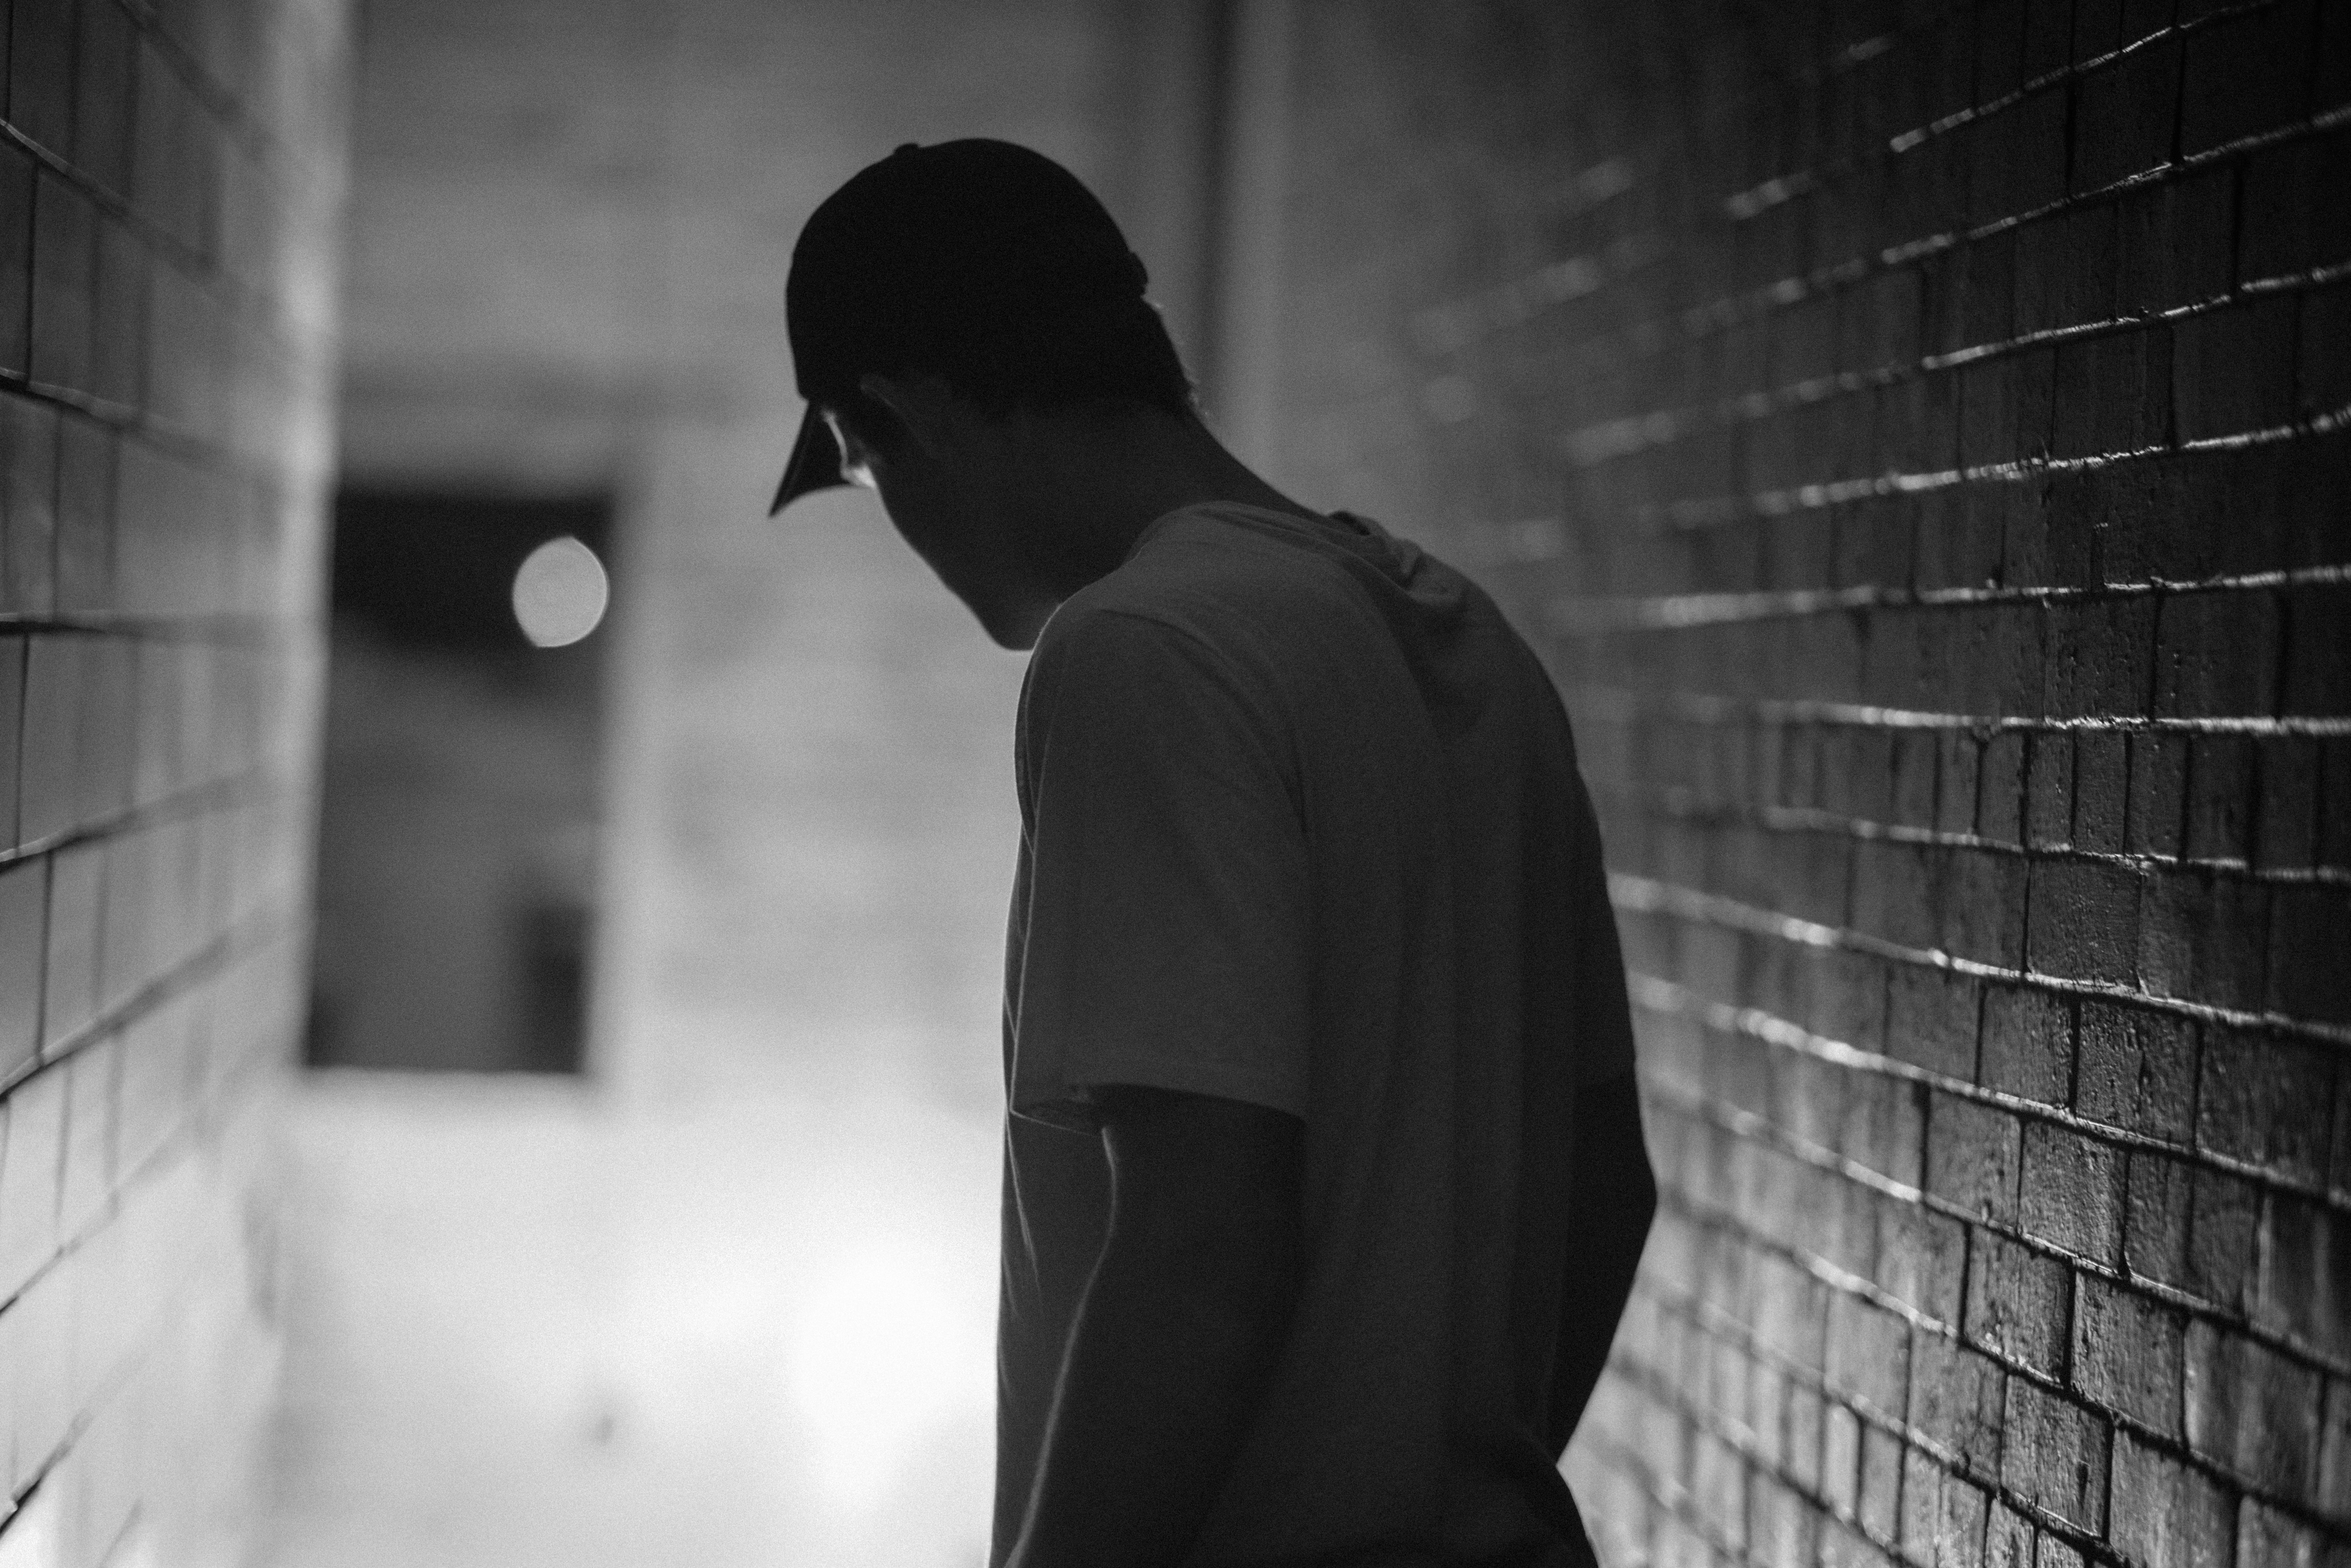 photography of man looking down surrounded by brick walls